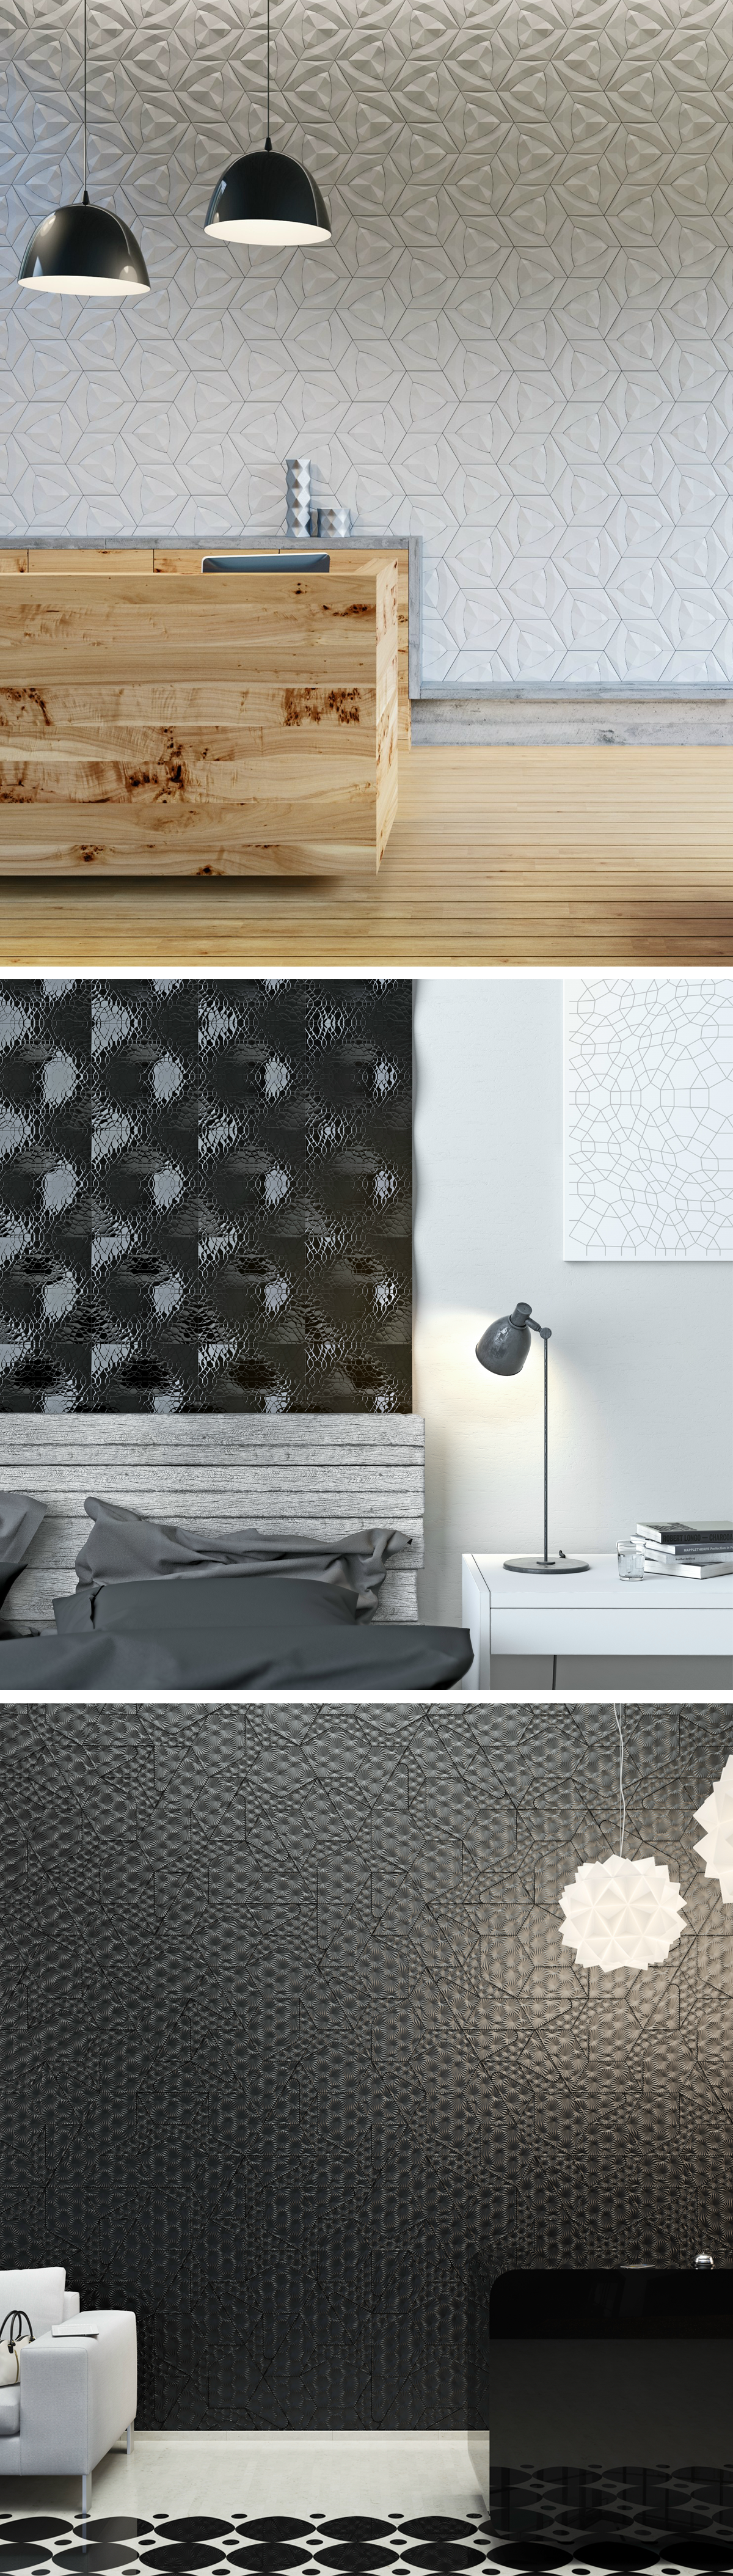 wall tile collections by kazaconcrete dwall decoration also rh pinterest